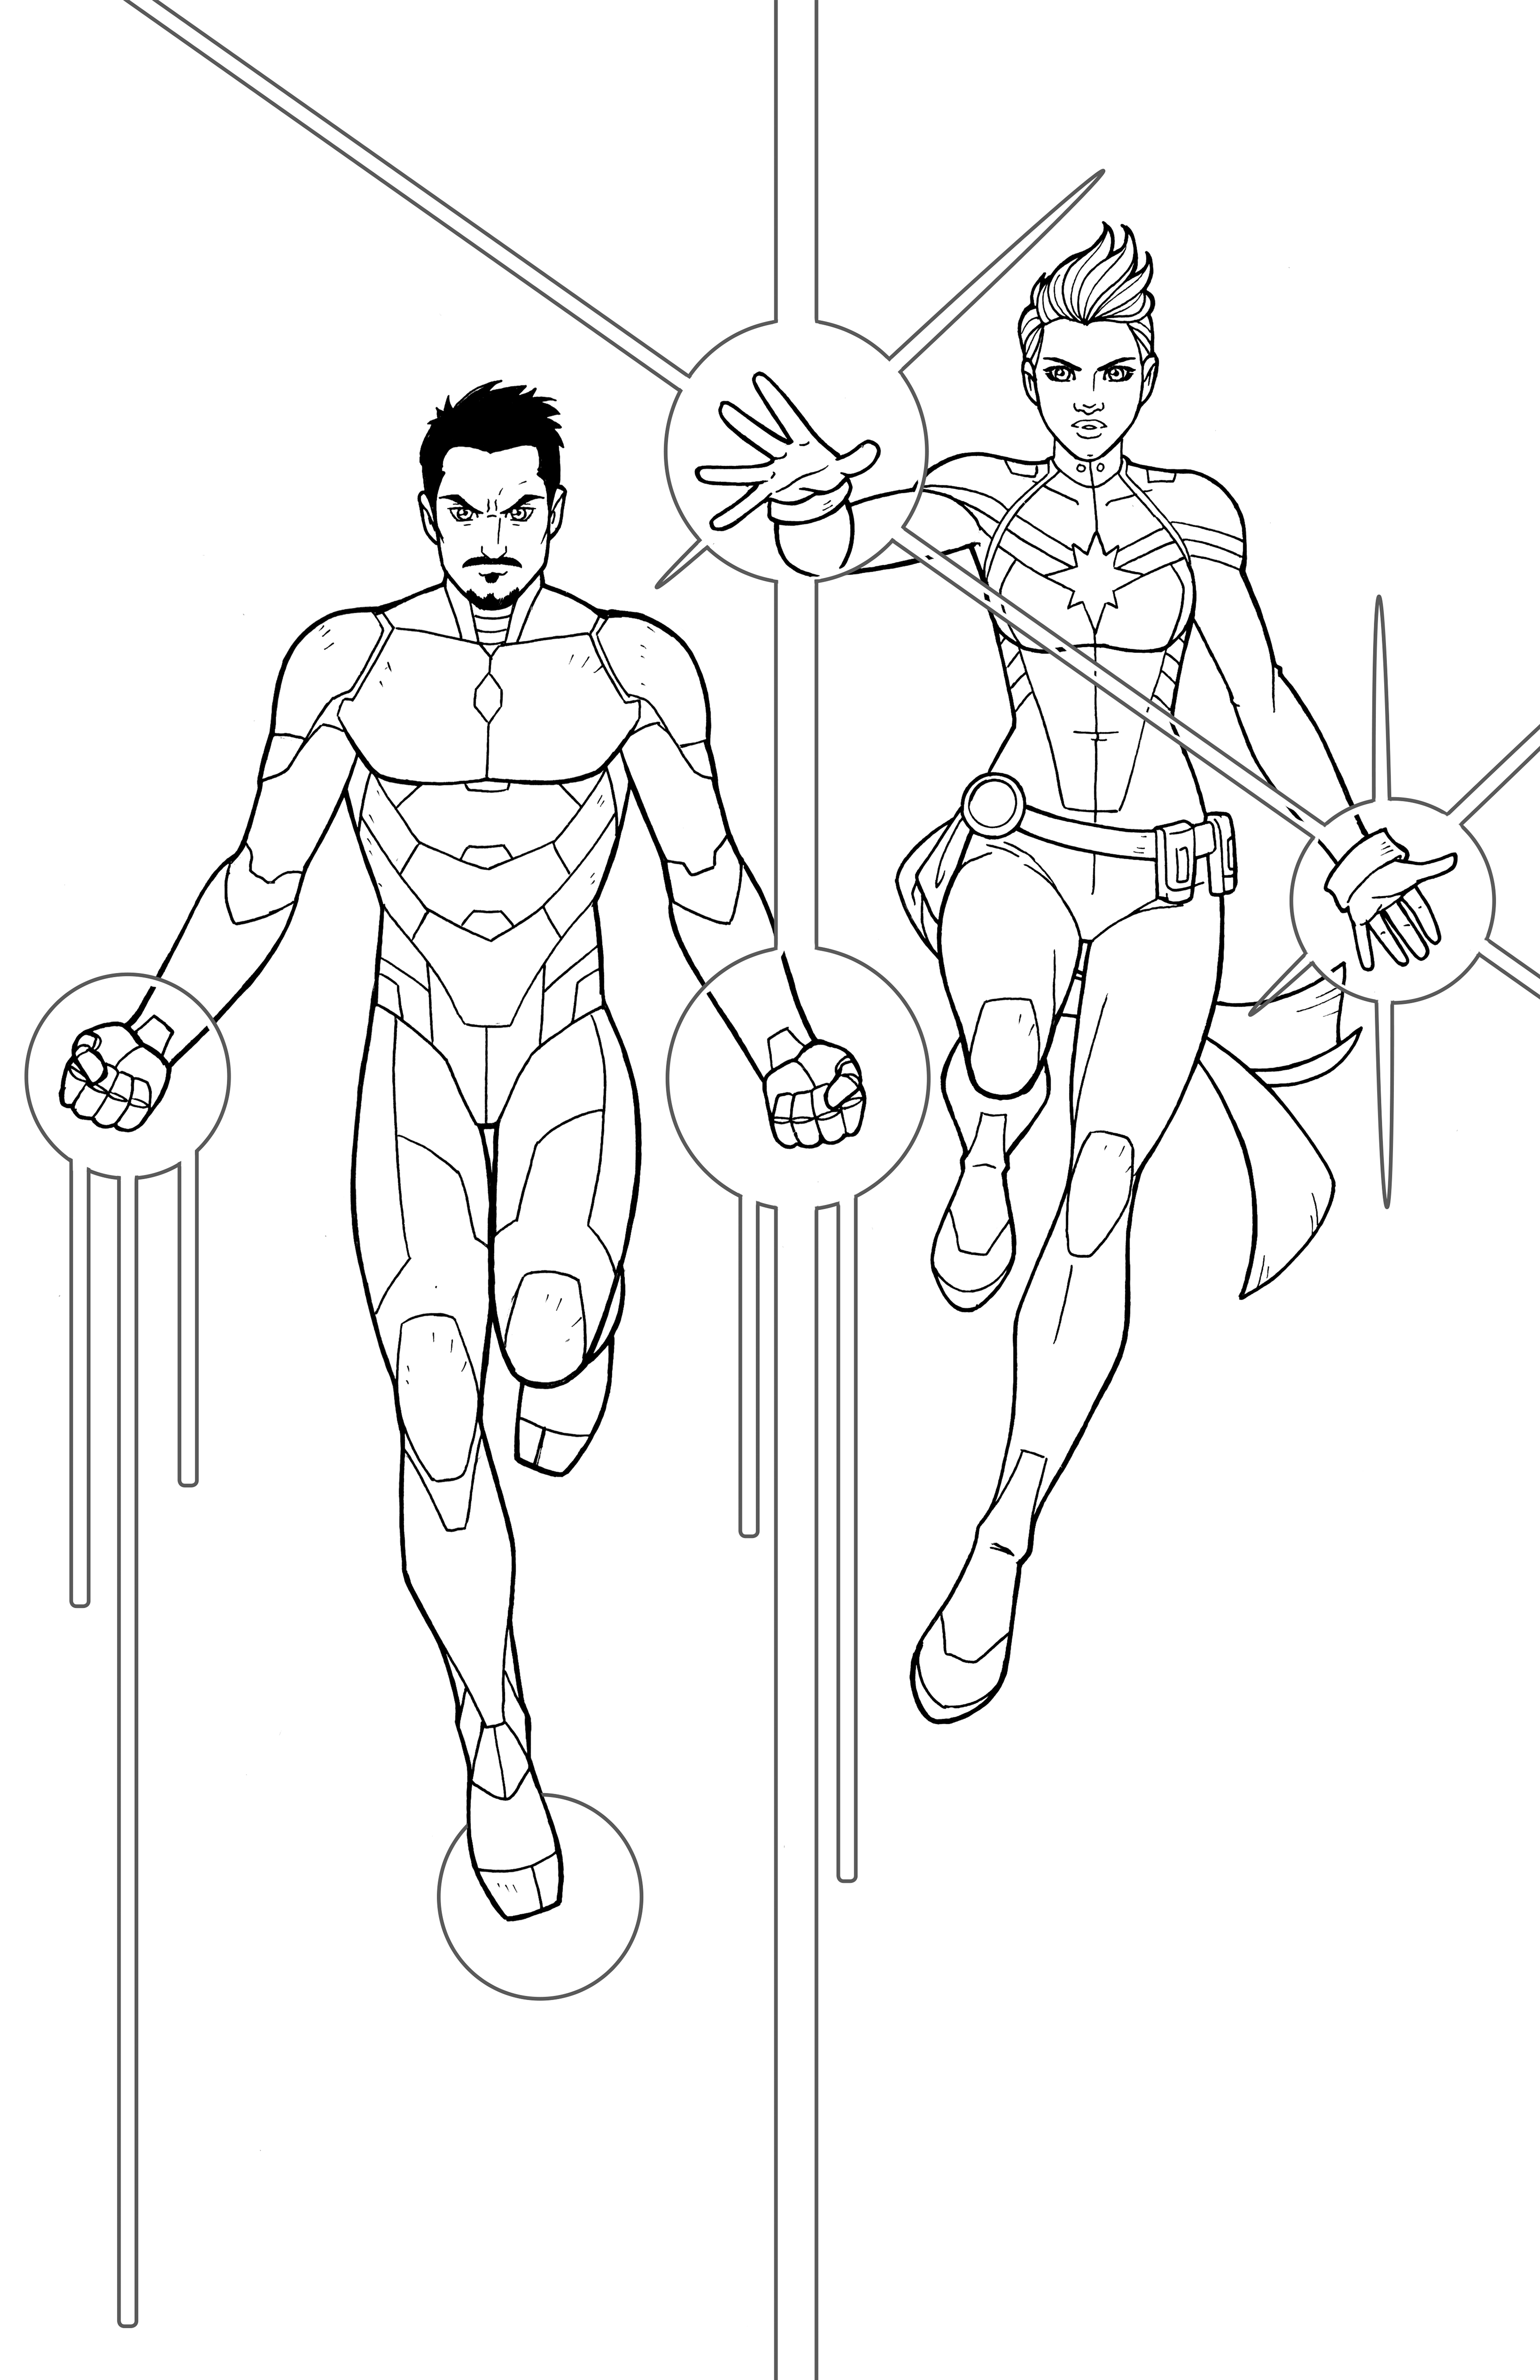 captain marvel coloring pages - photo#25